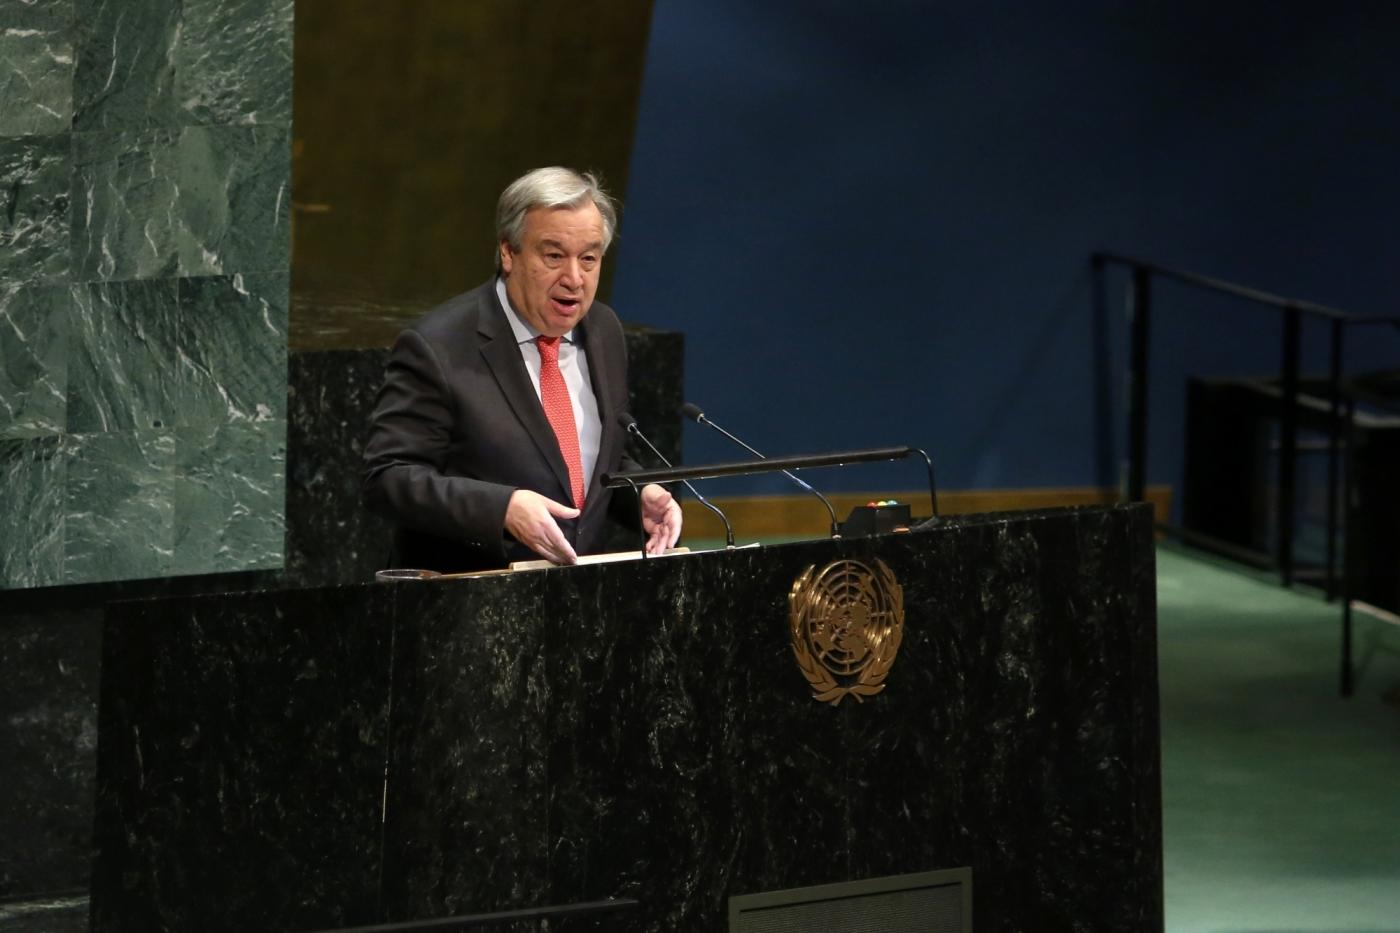 """UNITED NATIONS, March 11, 2019 (Xinhua) -- United Nations Secretary-General Antonio Guterres addresses the opening of the 63rd Session of the Commission on the Status of Women (CSW63), at the UN headquarters in New York, March 11, 2019. United Nations Secretary-General Antonio Guterres on Monday warned that there is a """"pushback"""" on women's rights globally. (Xinhua/Li Muzi/IANS) by ."""